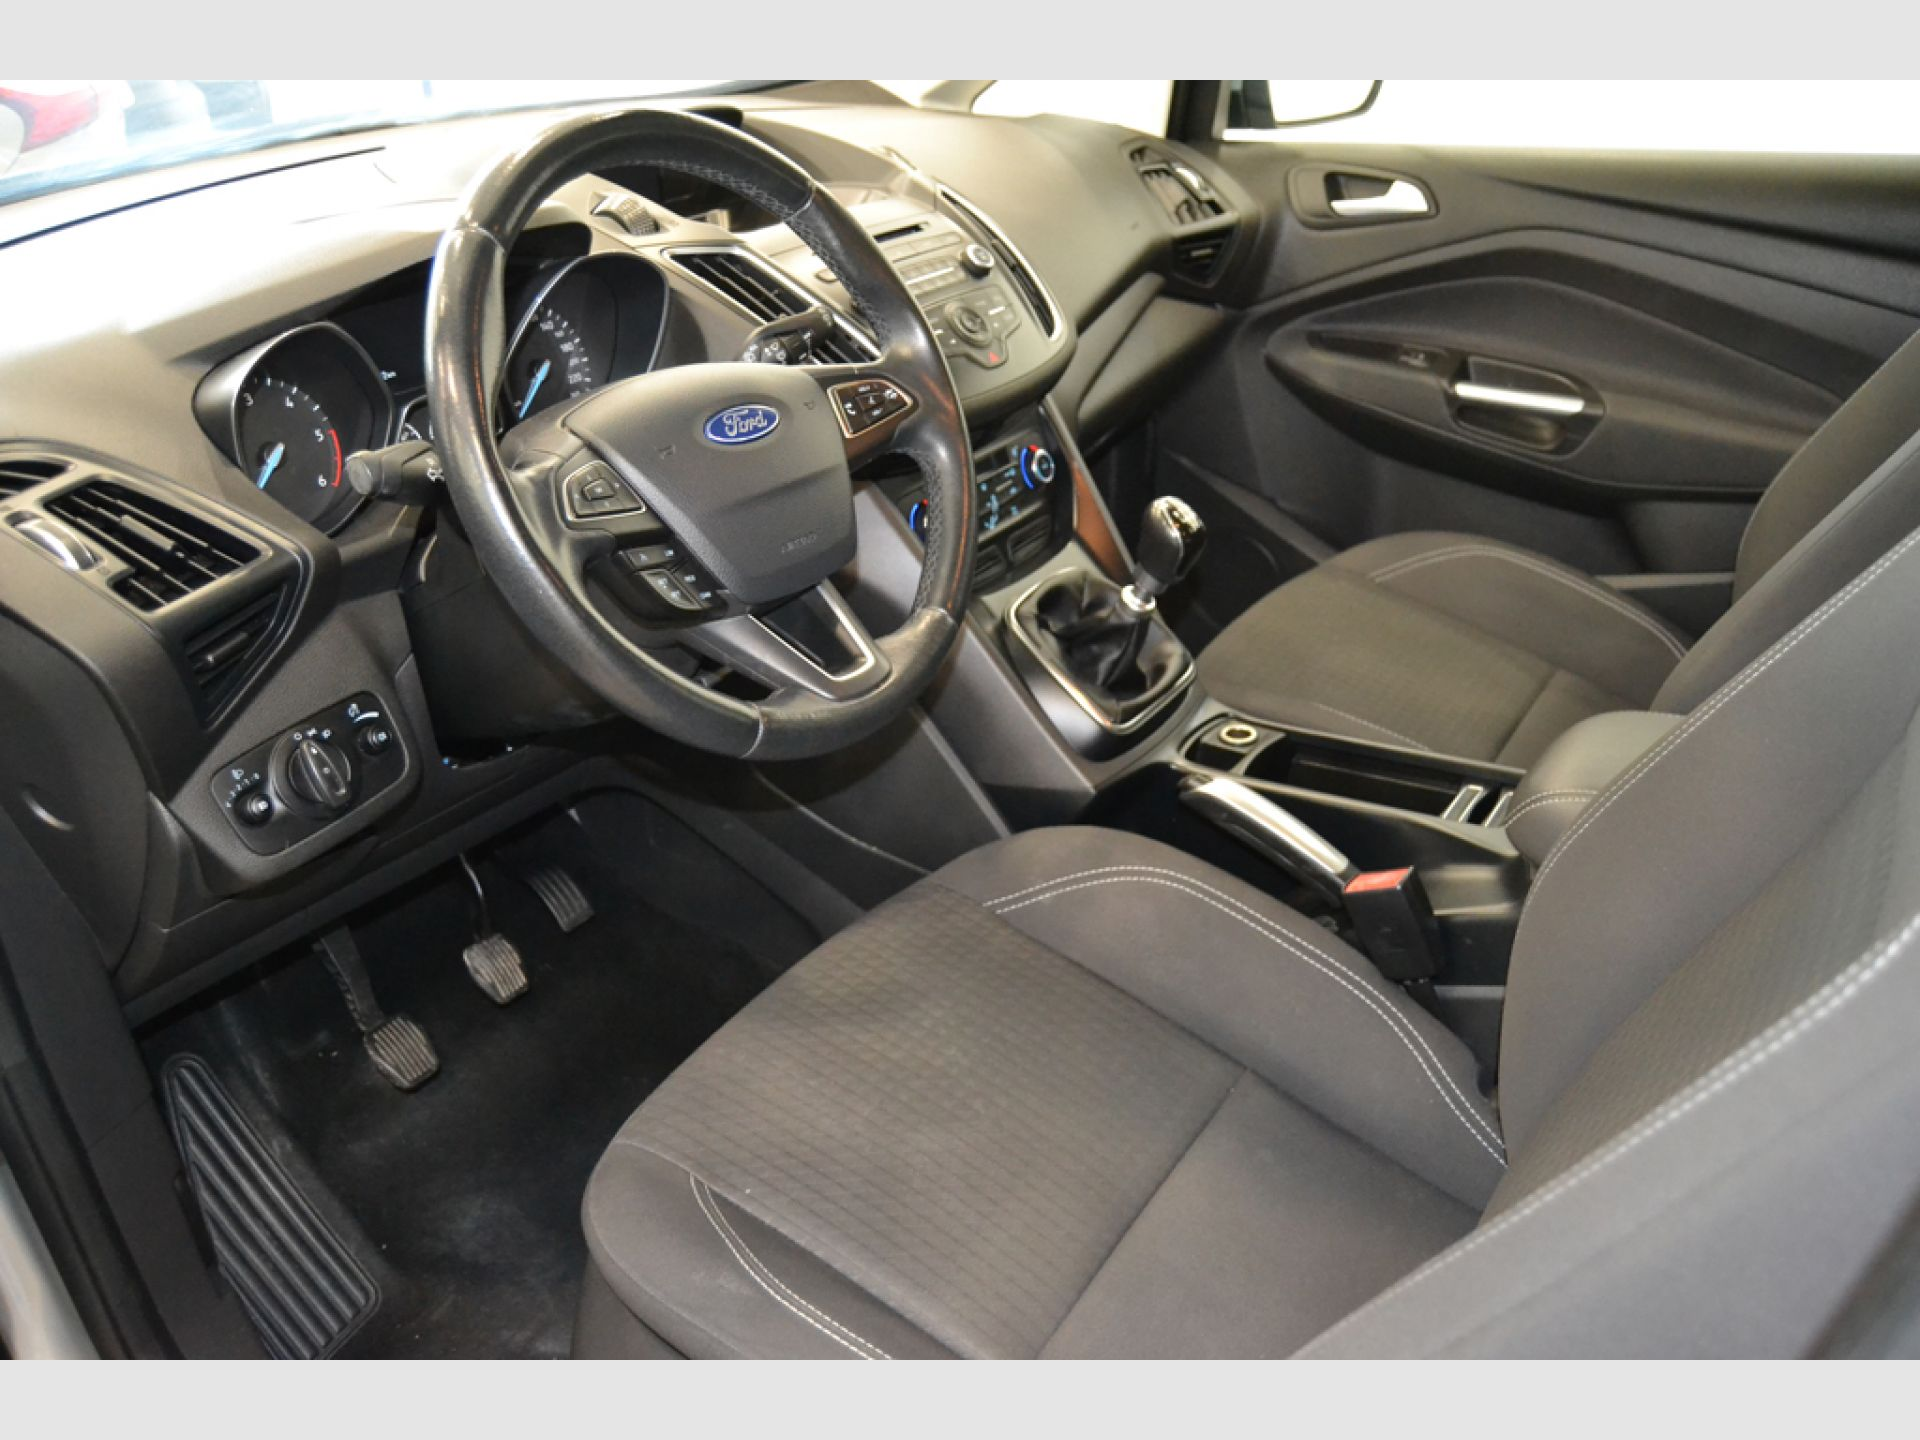 Ford C-Max 1.0 EcoBoost (125CV) Trend+